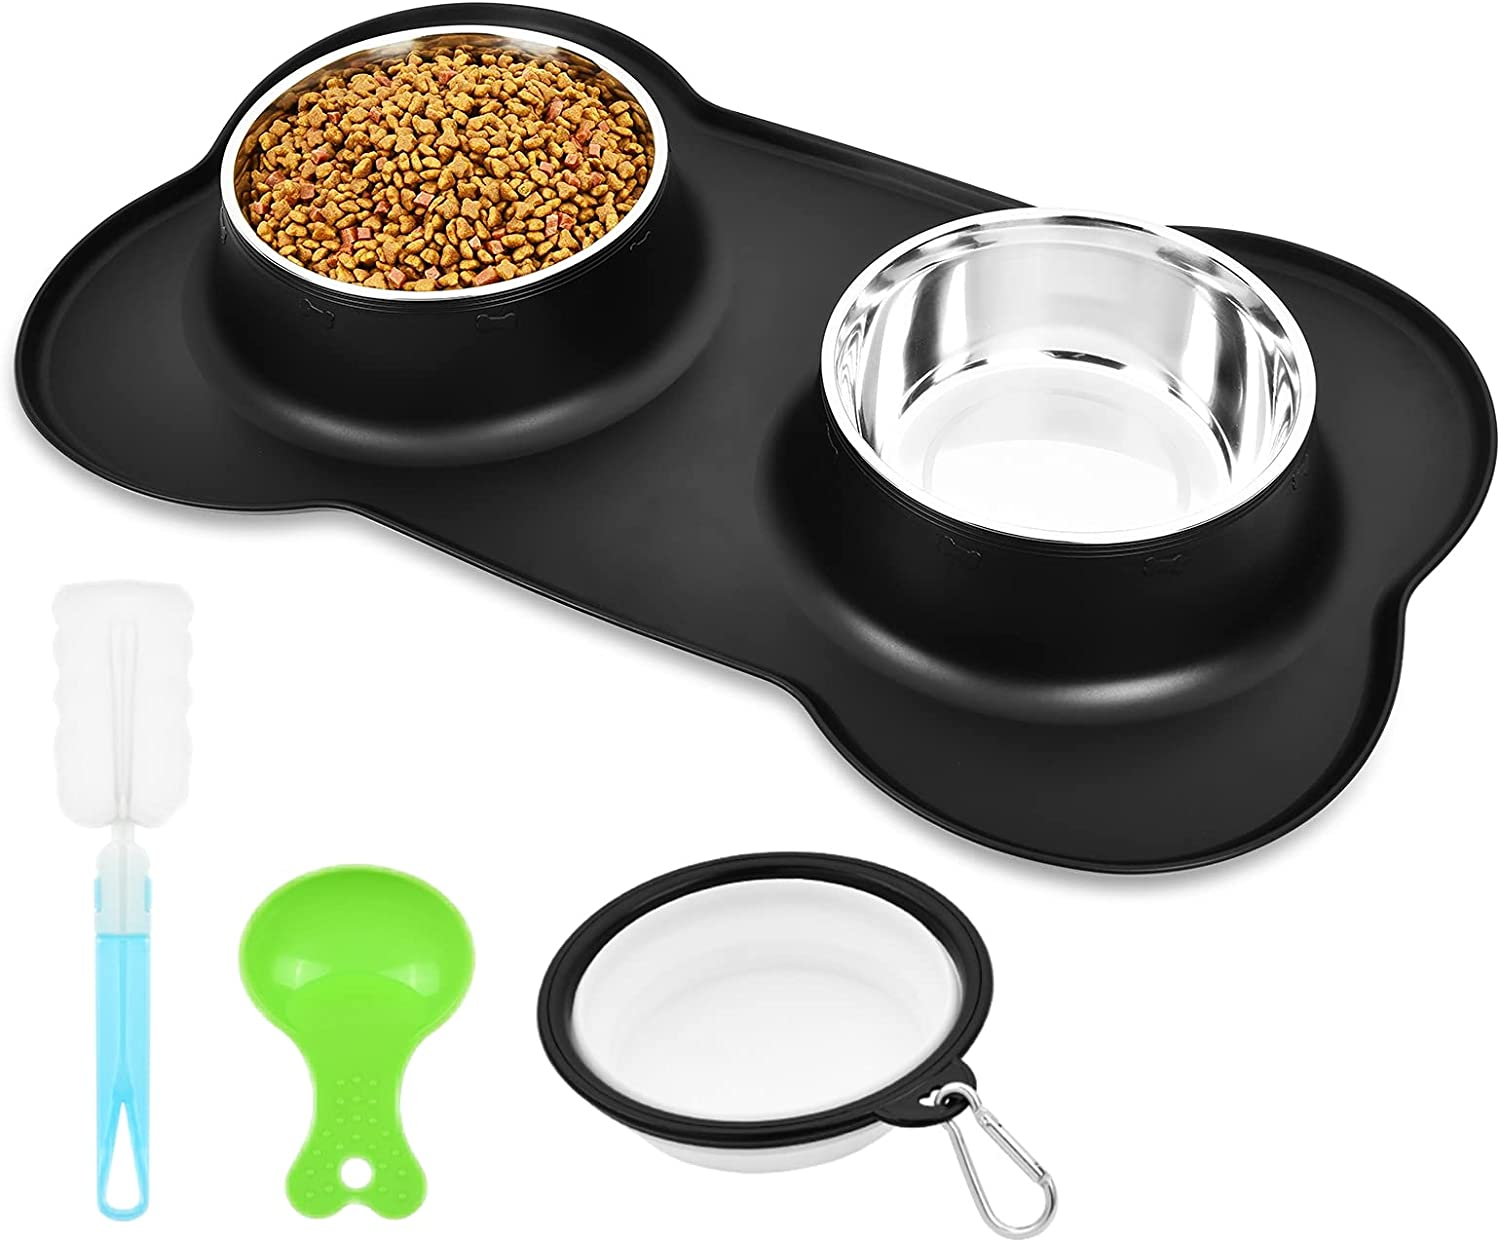 Dog Bowls, Water and Food Dog Bowl, Dog Cat Food Bowl, Double Pet Bowls, Stainless Steel Dog Bowl with Non Spill Non Skid Silicone Mat, Dog Water Bowl for Small Dogs, Cats, Puppies and Pets (S, Black)